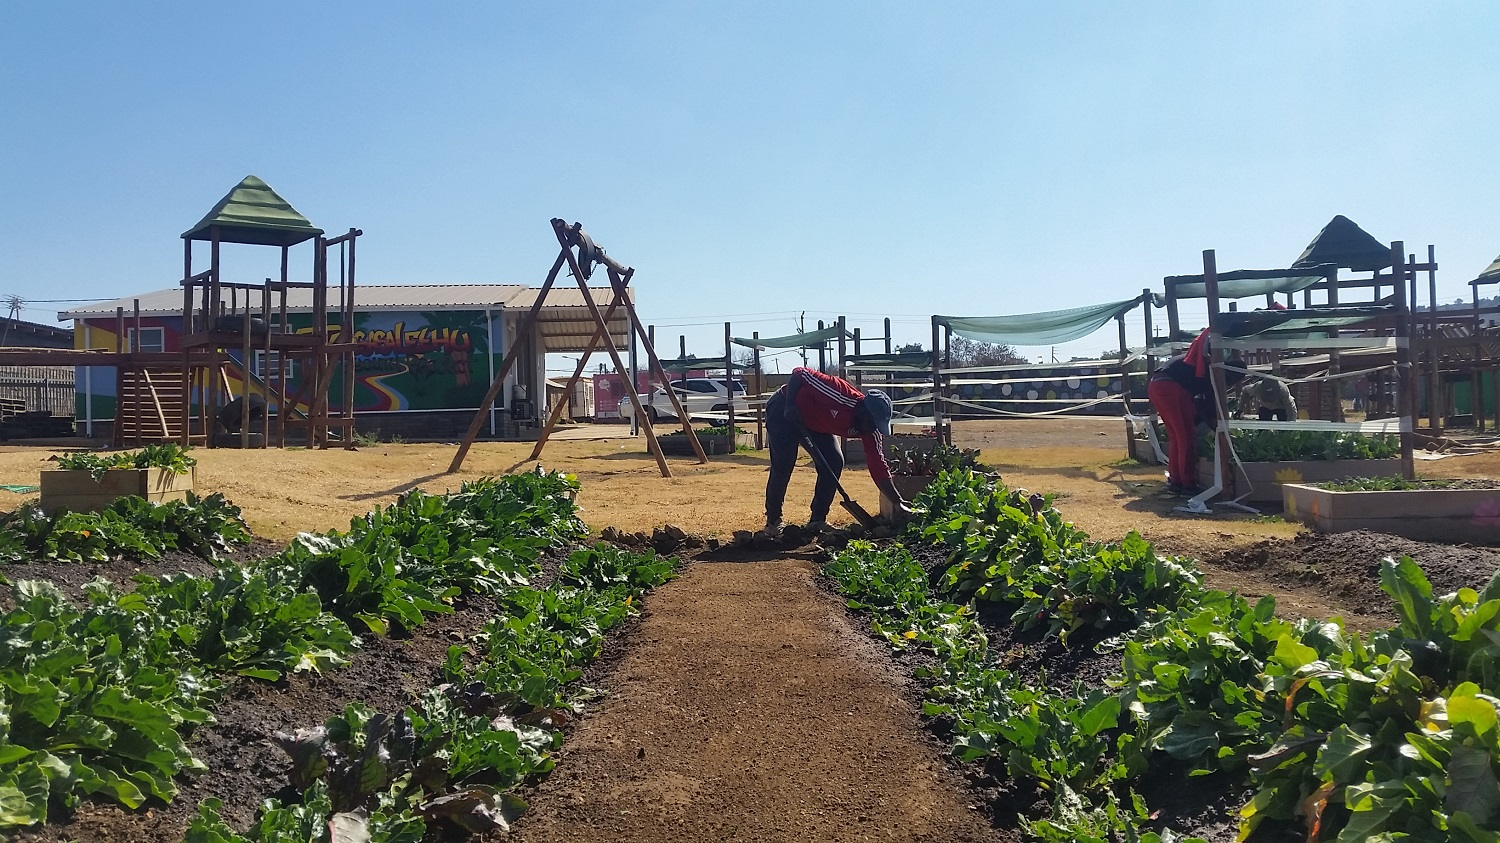 A man tends to rows of plants in a community garden